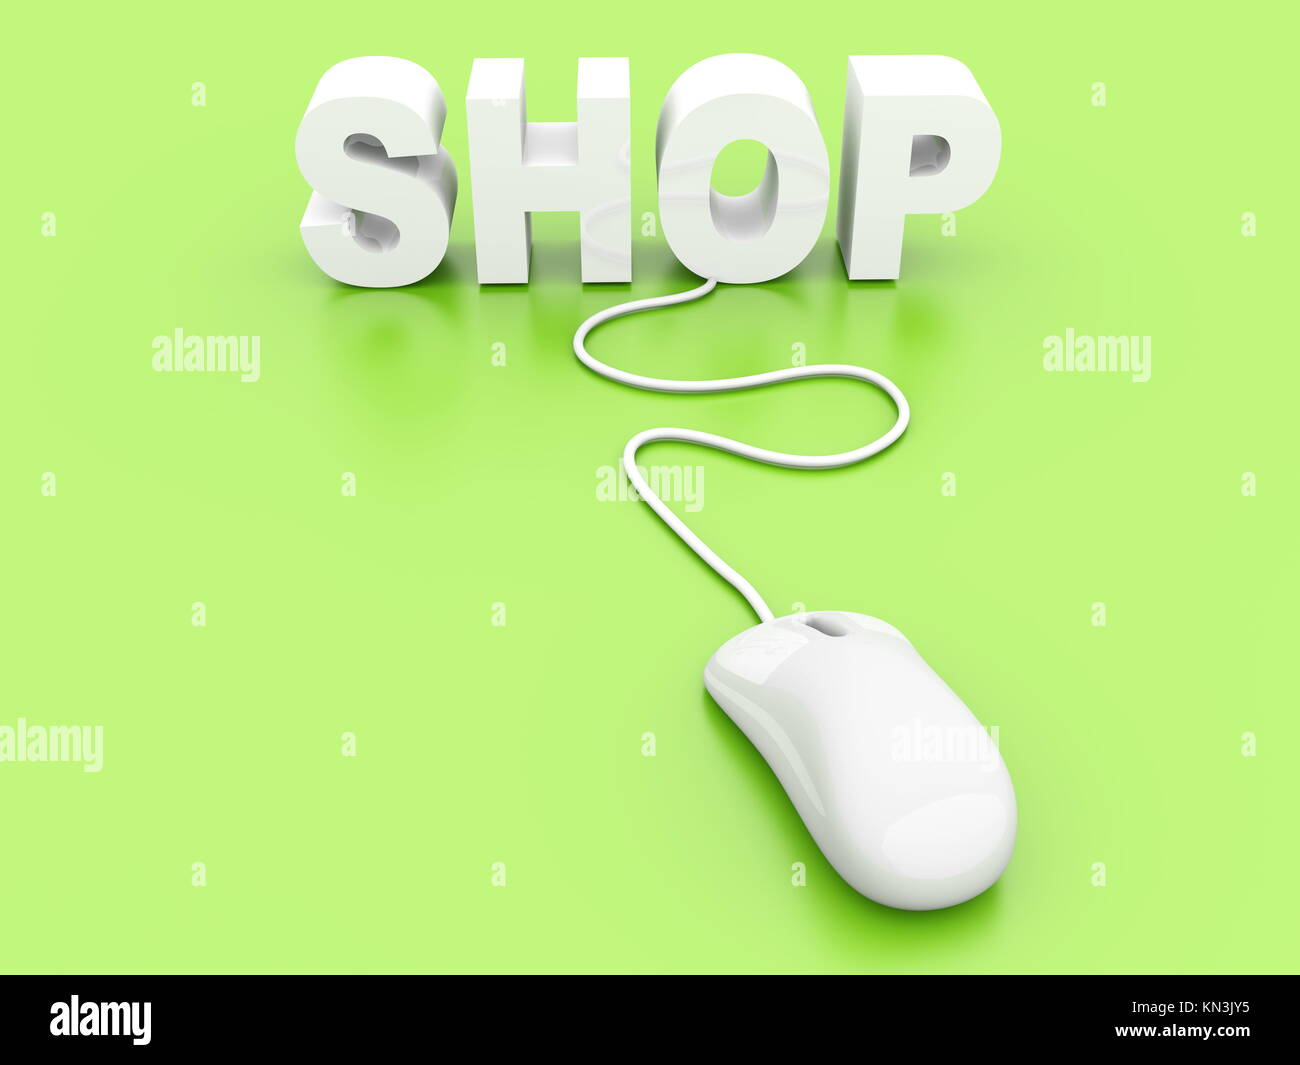 Buy at the Online shop. 3D rendered Illustration. Stock Photo